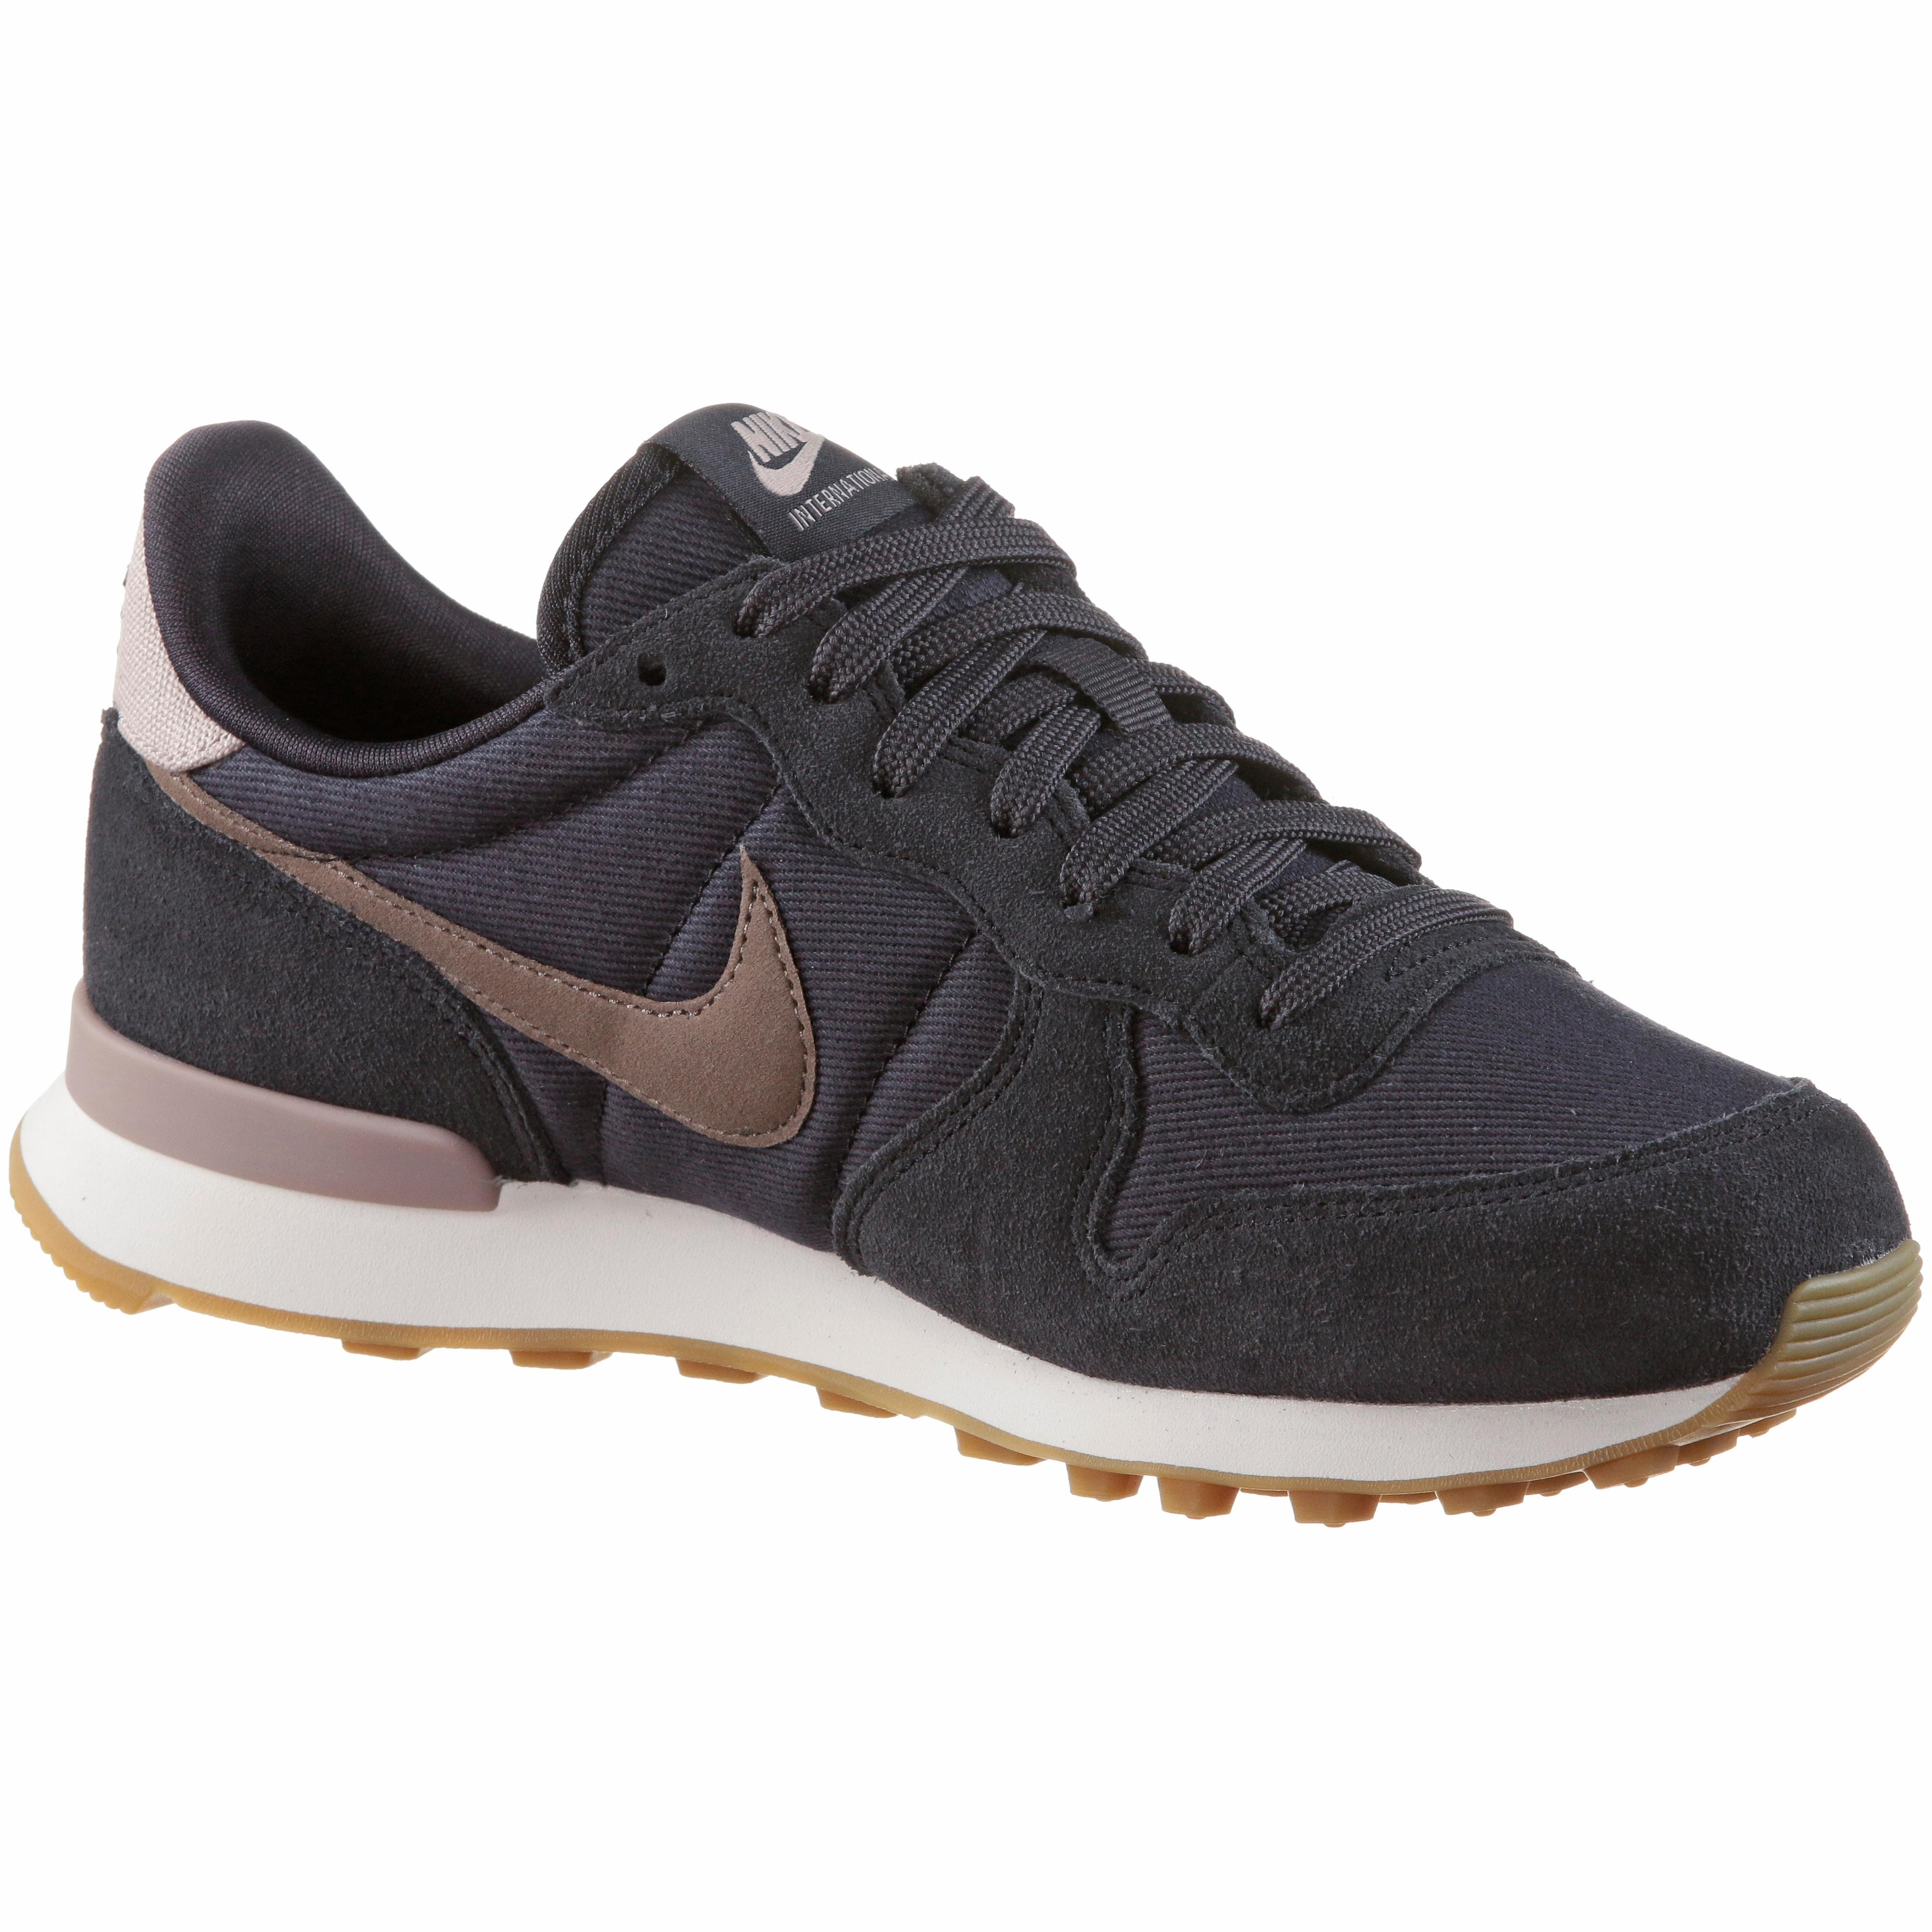 info for 20419 f5bc5 Nike INTERNATIONALIST Sneaker Damen oil grey-mink brown-summit white im  Online Shop von SportScheck kaufen